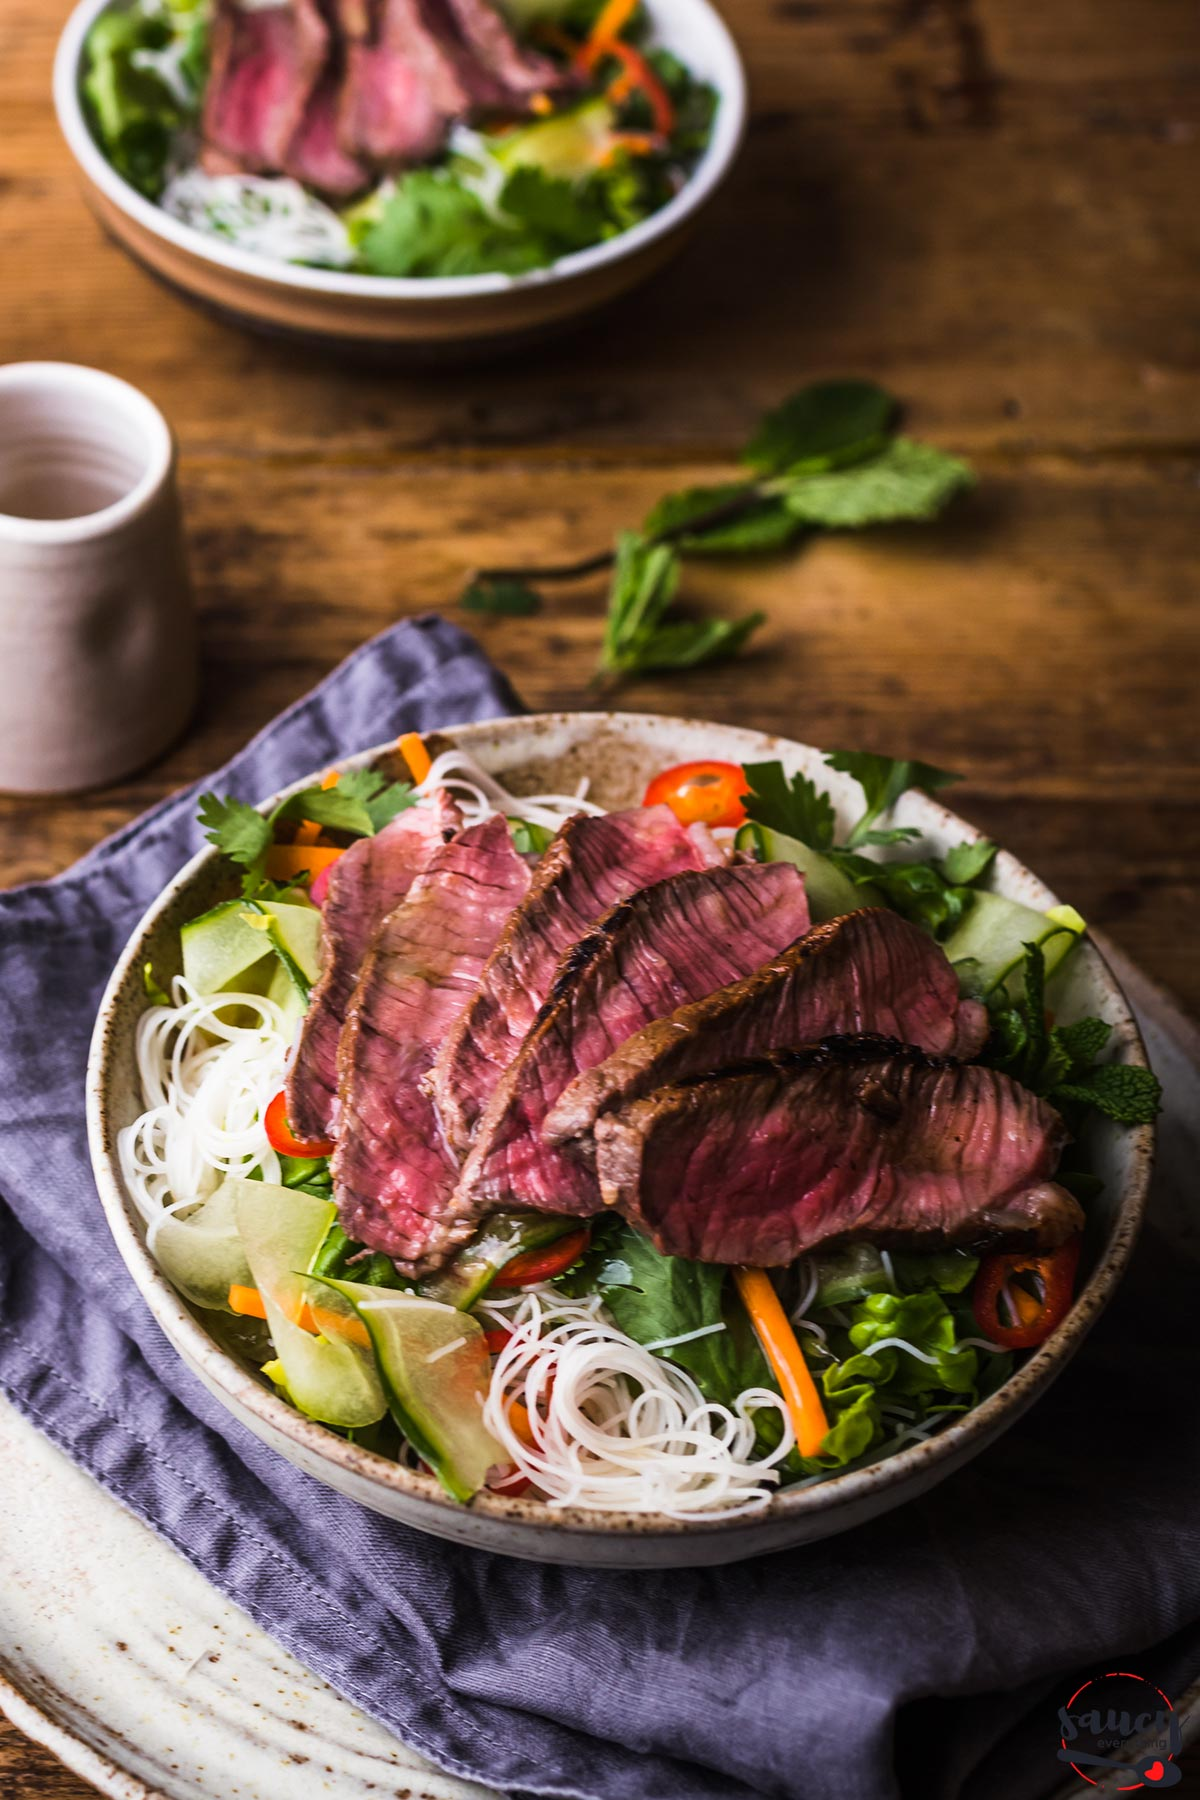 Vietnamese steak salad with dressing on the side